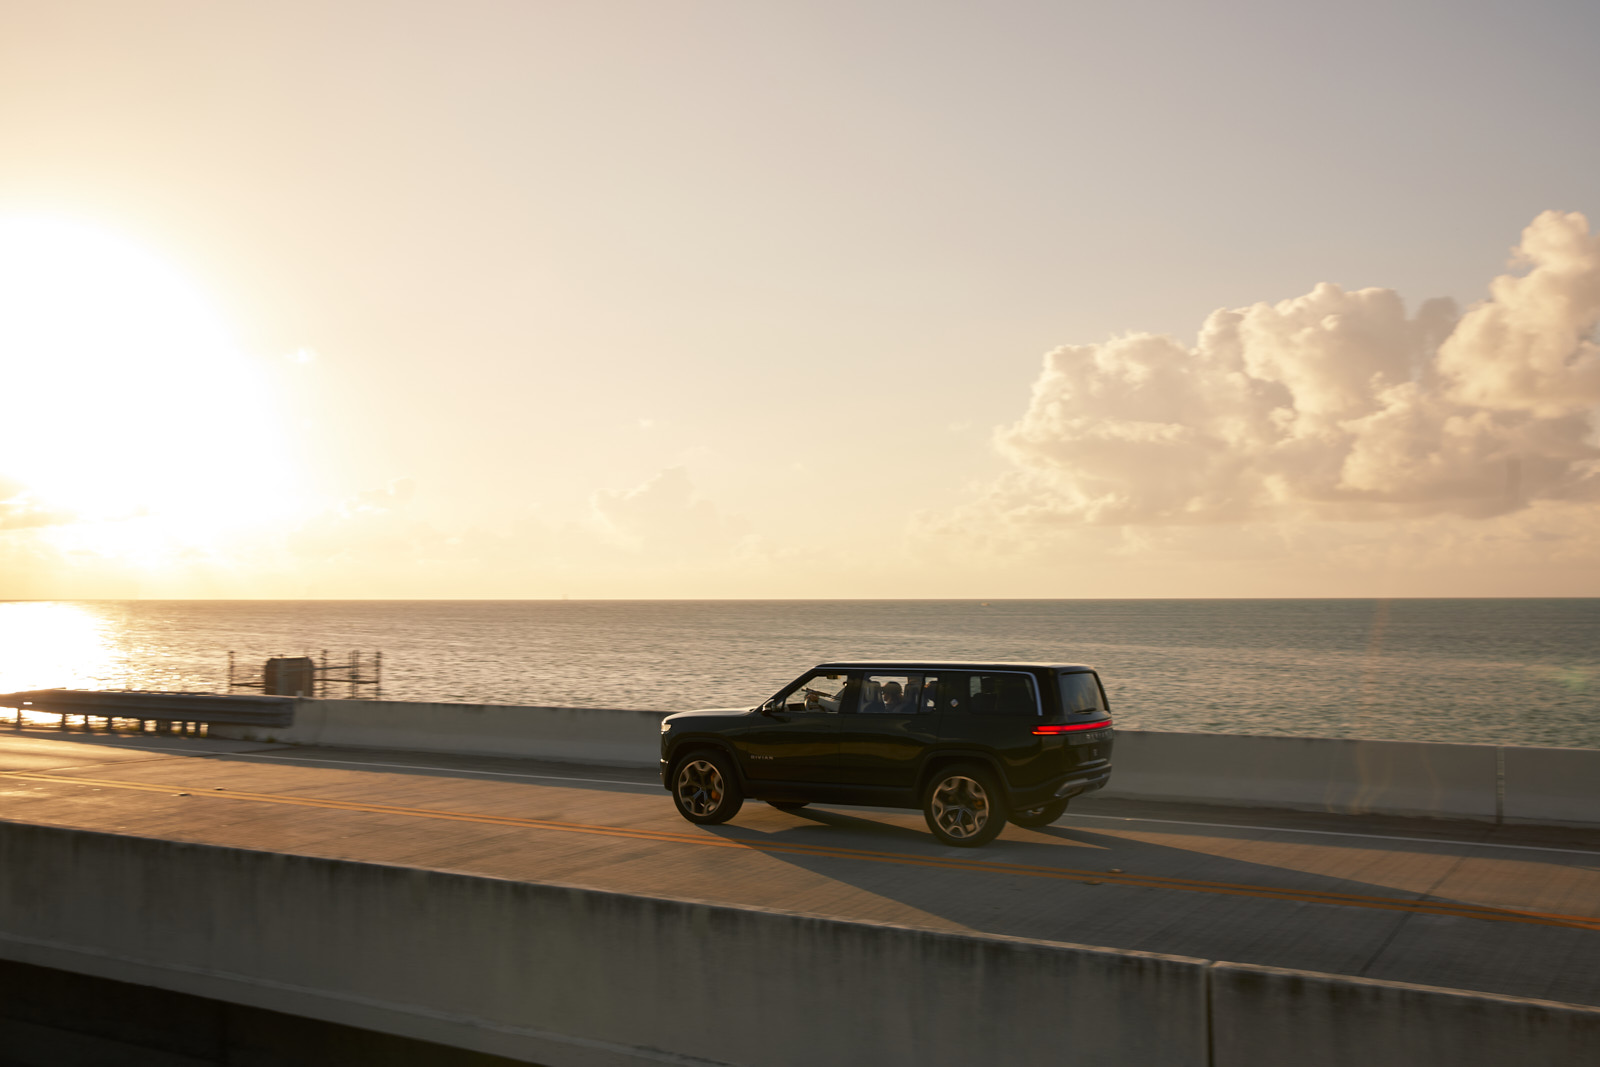 Automotive advertising directed and photographed by Dylan Johnston for electric vehicle Rivian. Shot on location in the Florida Keys throughout a weekend adventure fly fishing and camping in Arizona.